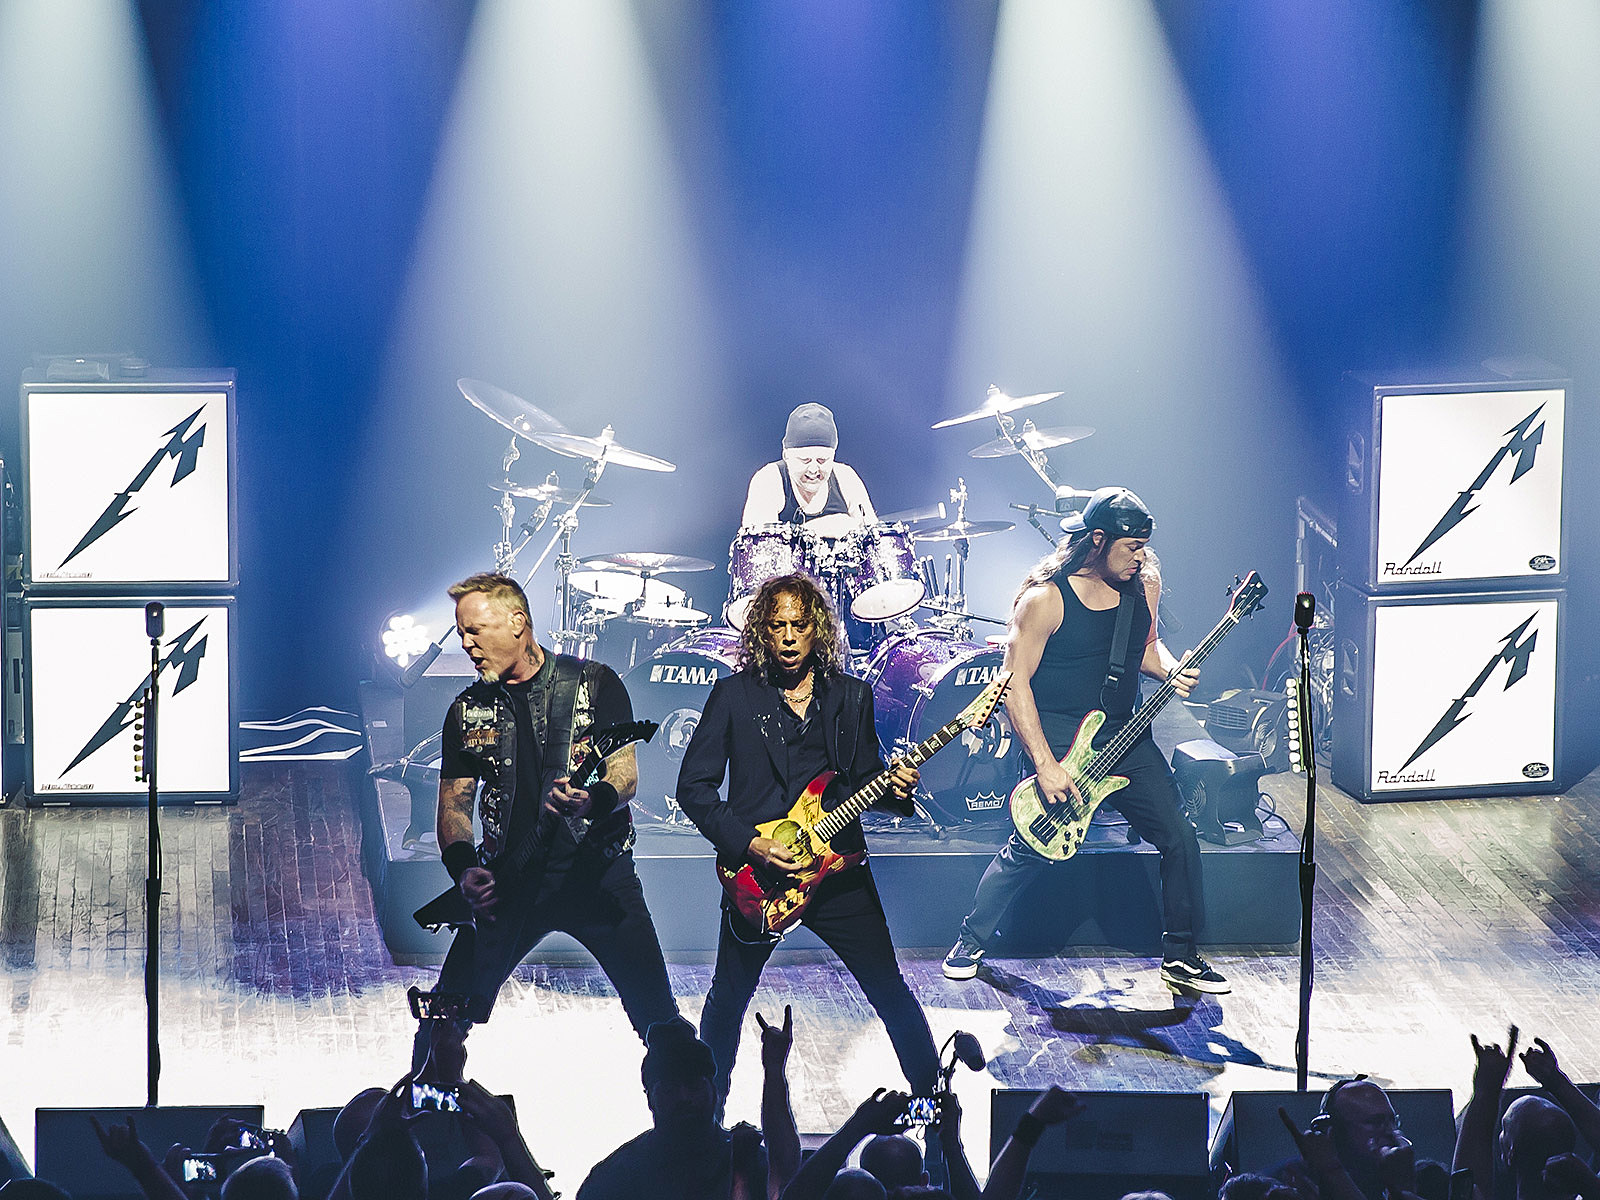 Metallica debuted videos for every song on their new album, are back on Napster